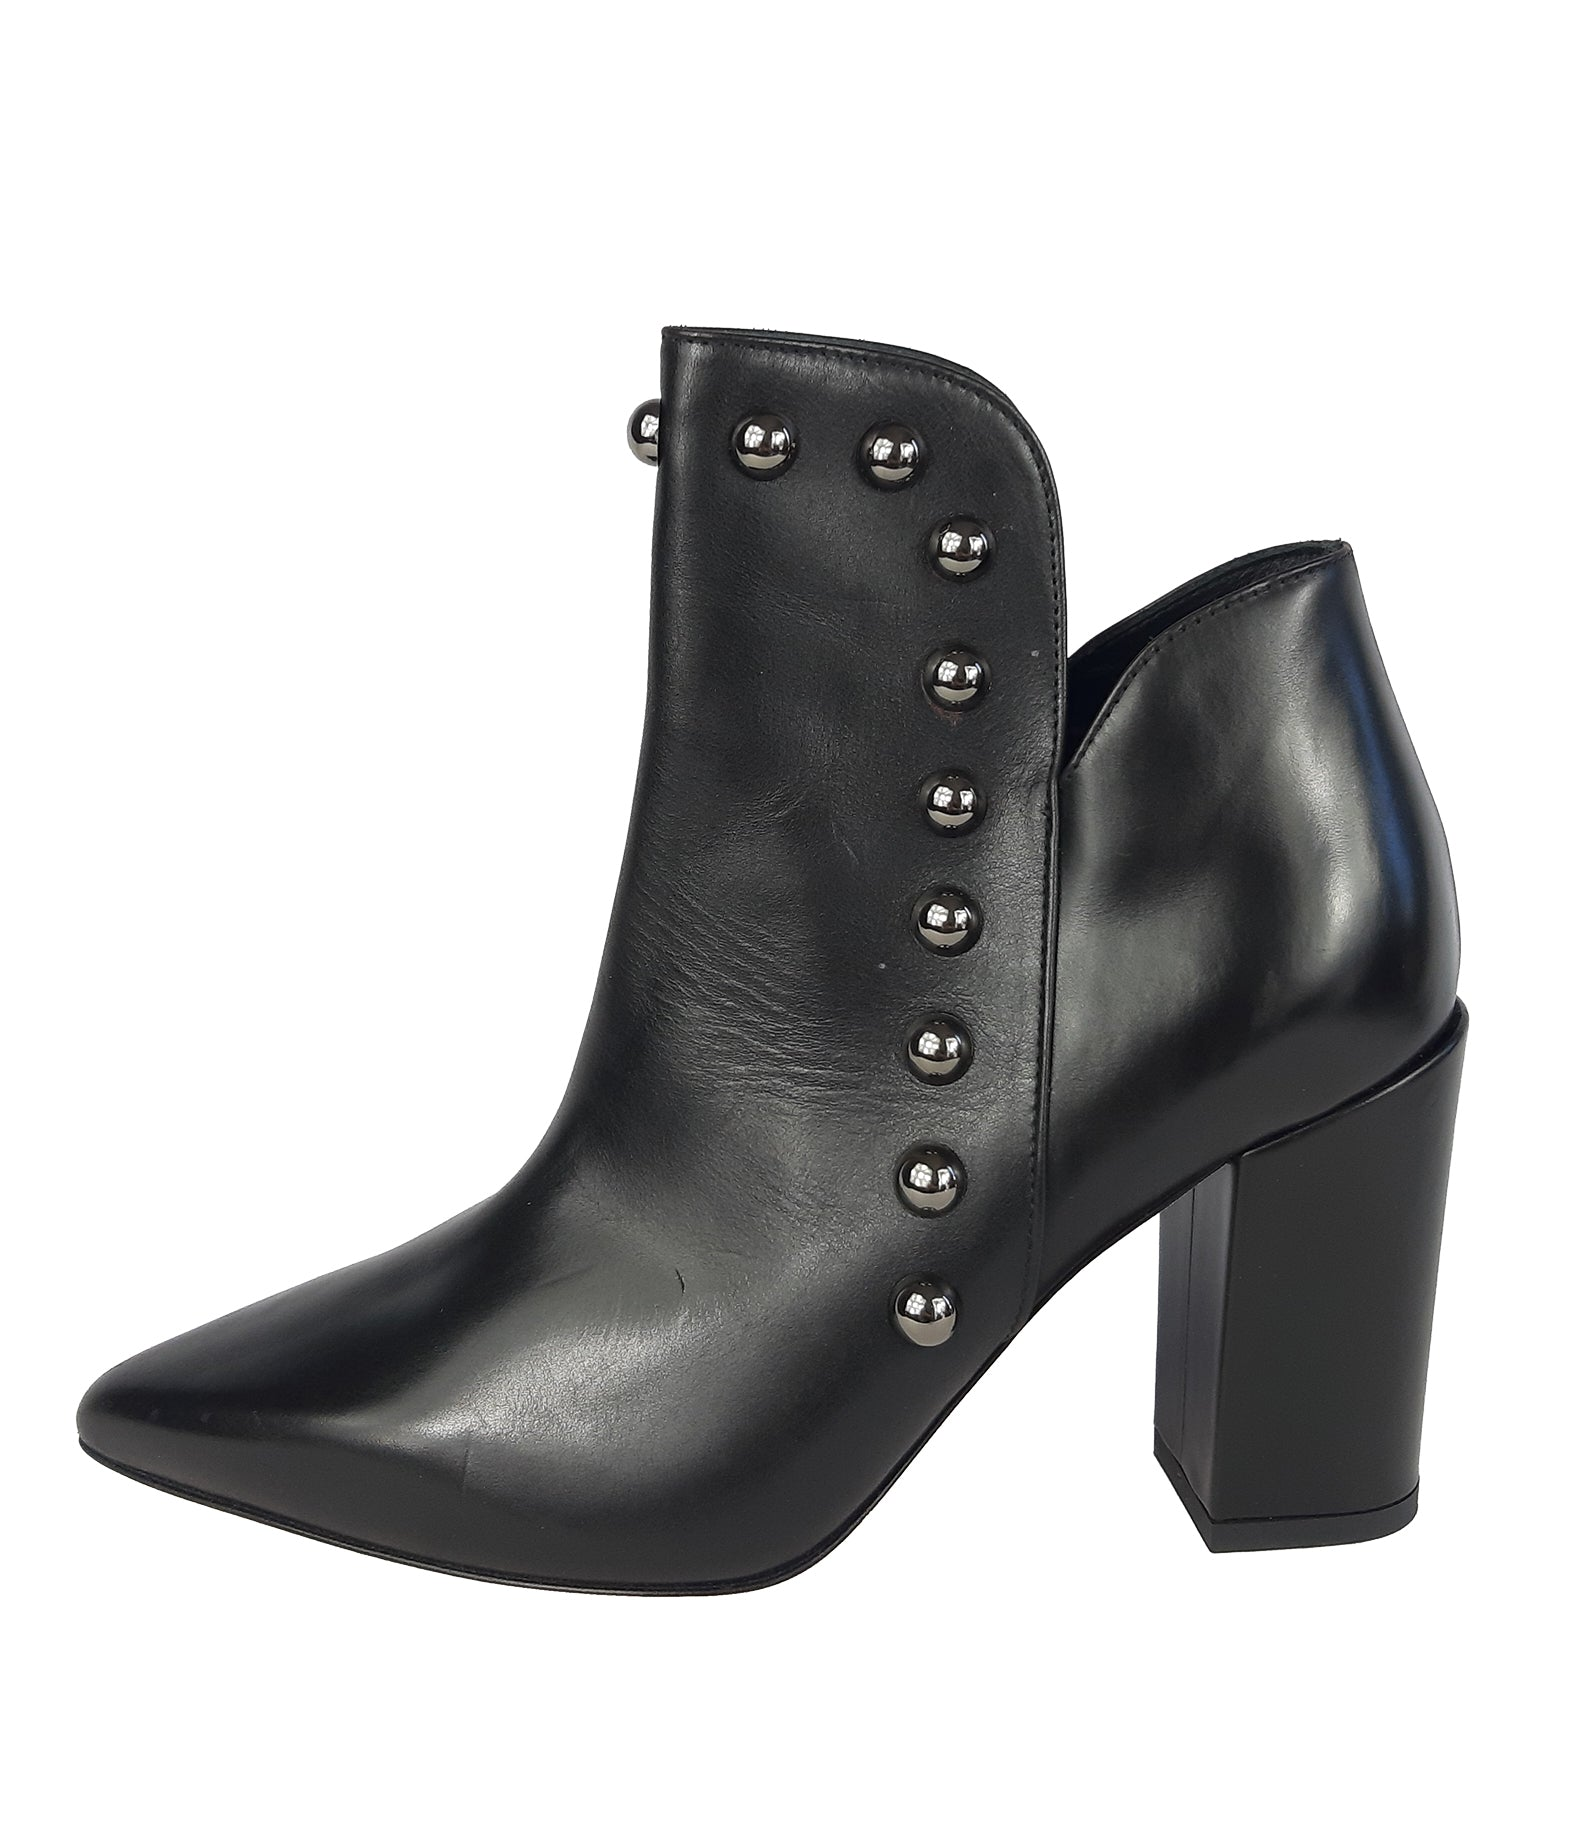 Pinko Black Platform Pointed boots with Black Shiny Studs in the front Size 36 (EU)